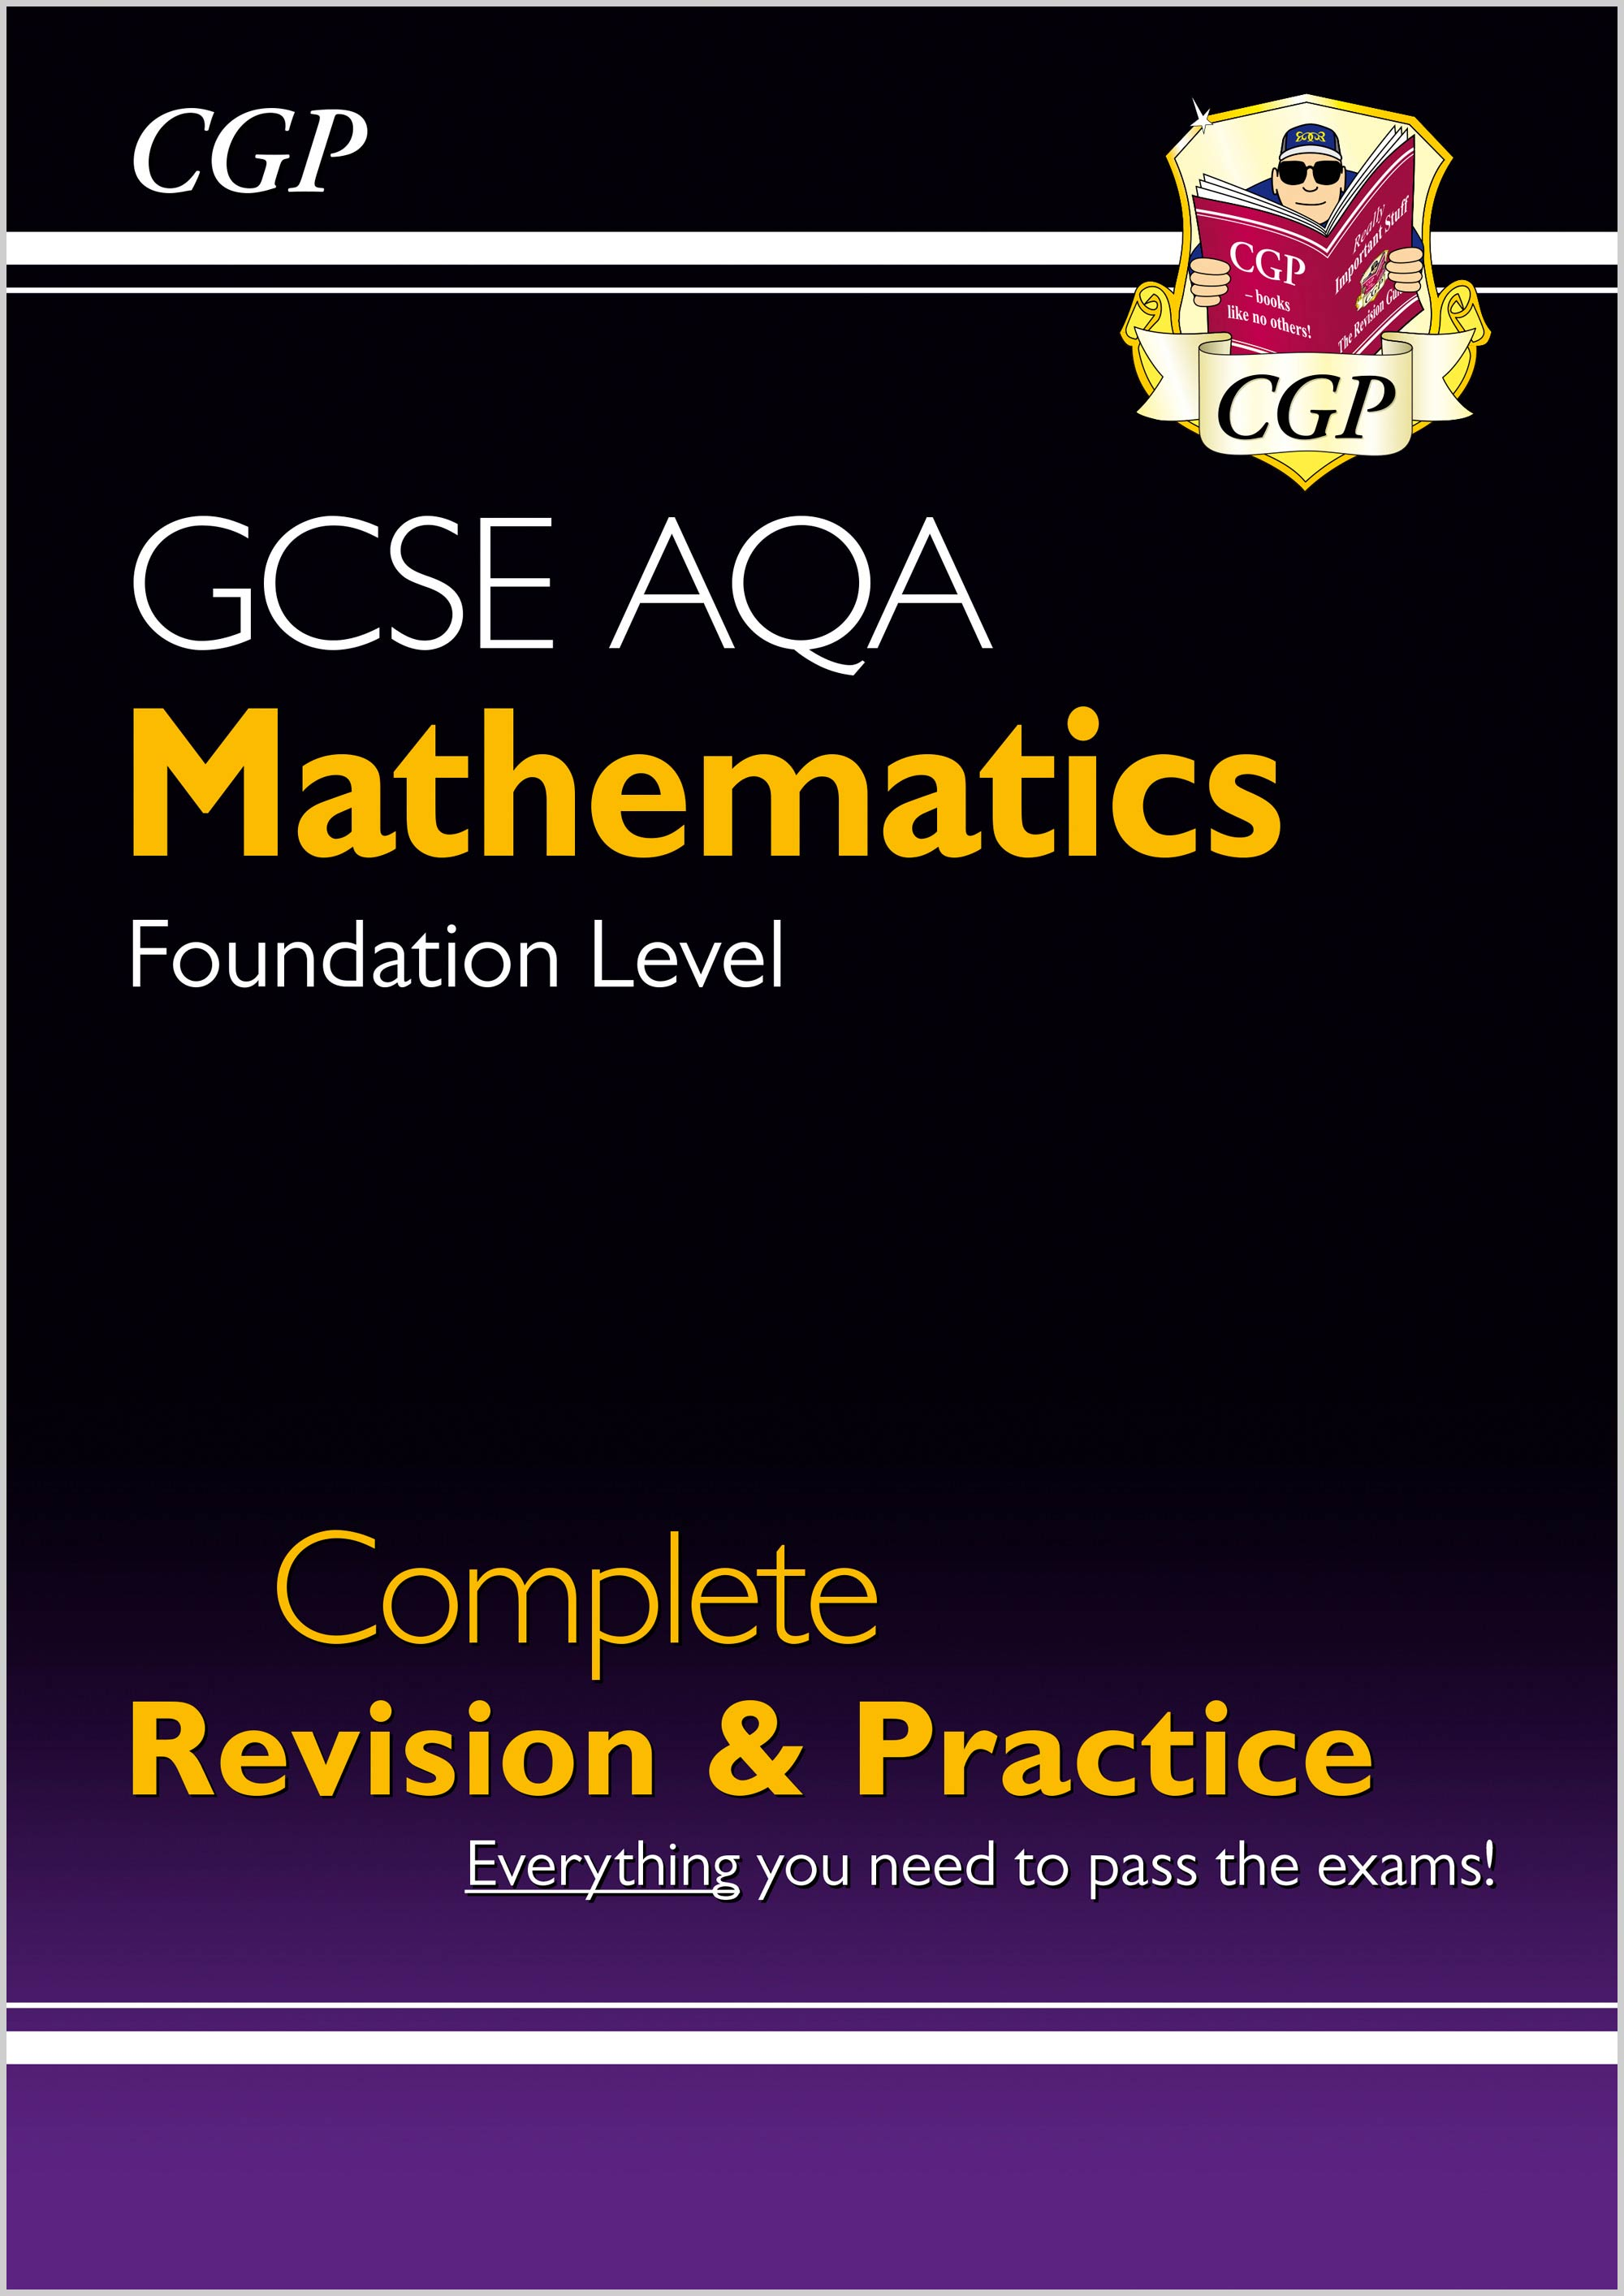 MQFS41DK - New GCSE Maths AQA Complete Revision & Practice: Foundation - Grade 9-1 Course